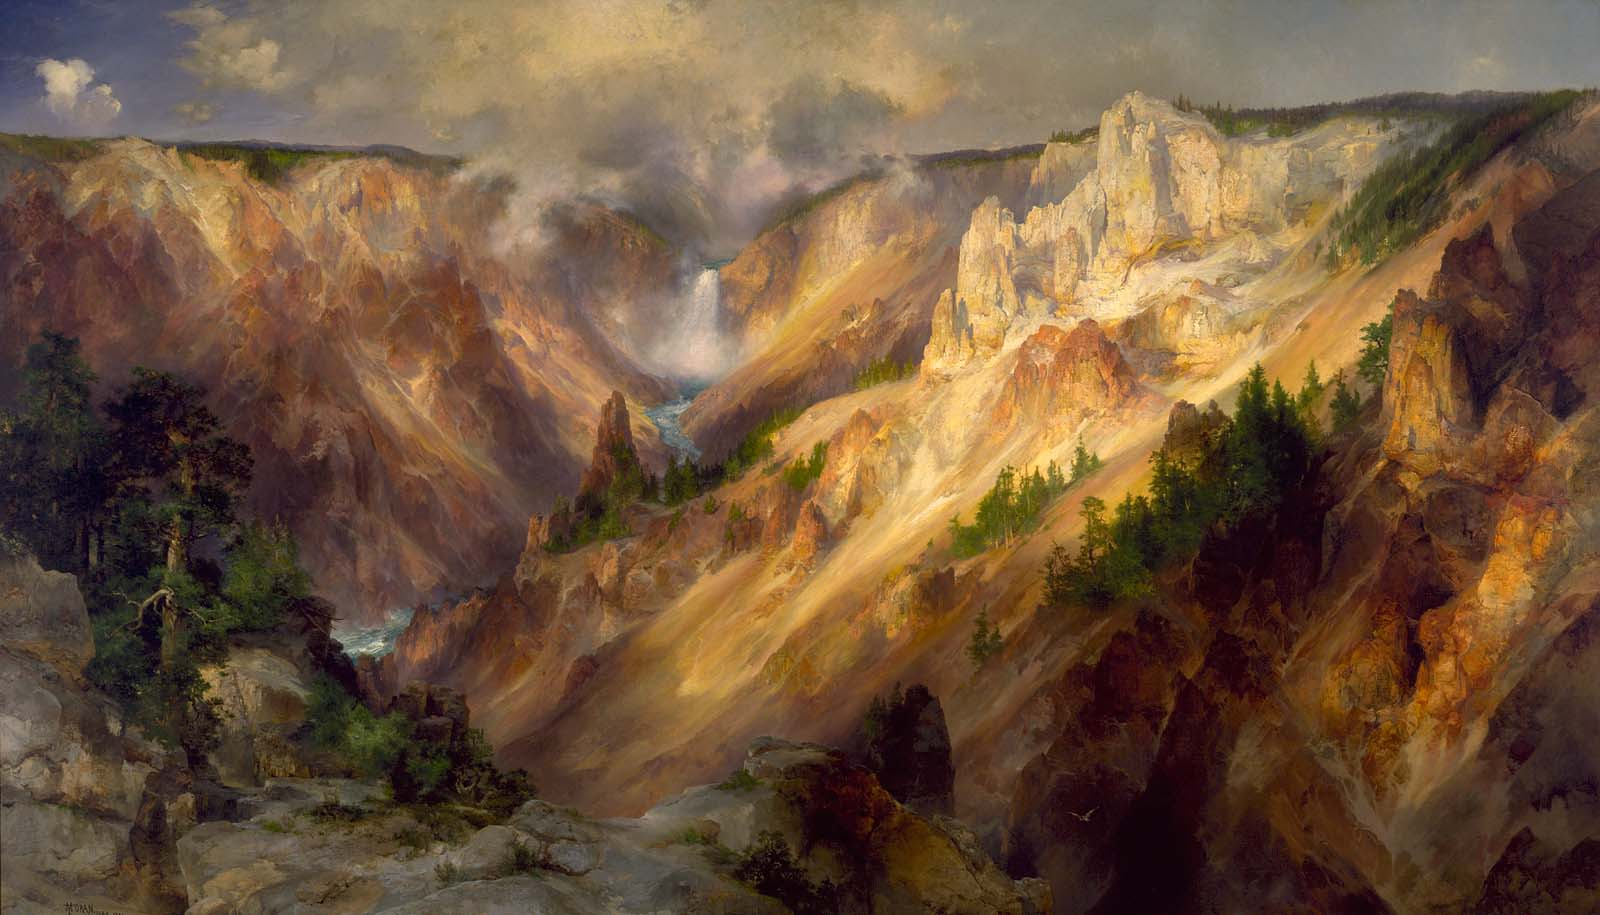 Grand Canyon of the Yellowstone 1890s_1928.7.1_1a